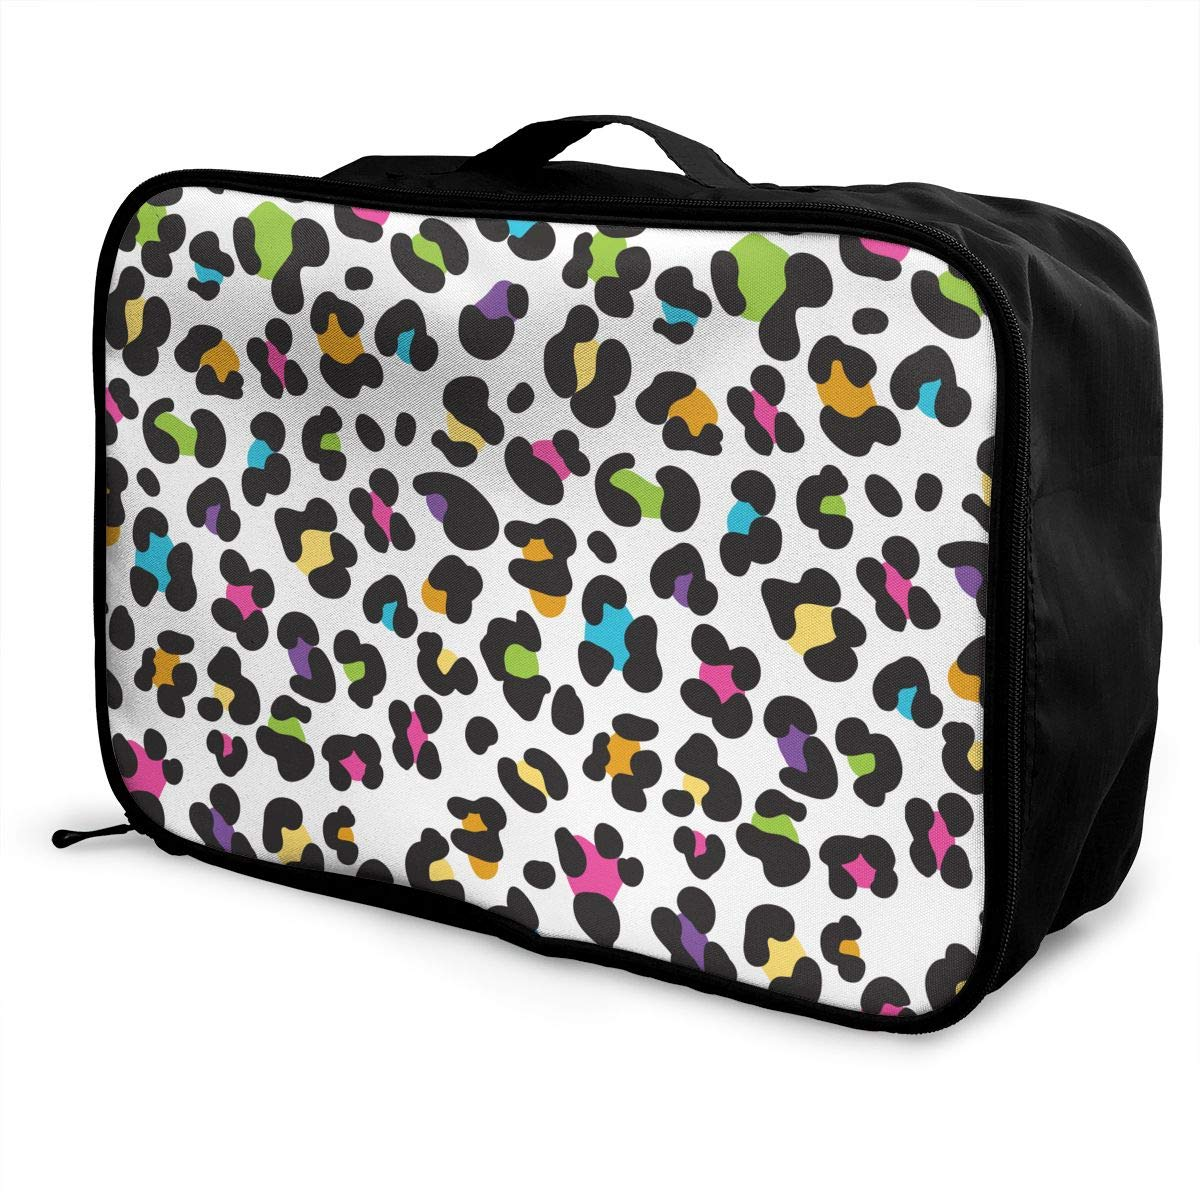 YueLJB Colorful Cheetah Leopard Print Lightweight Large Capacity Portable Luggage Bag Travel Duffel Bag Storage Carry Luggage Duffle Tote Bag